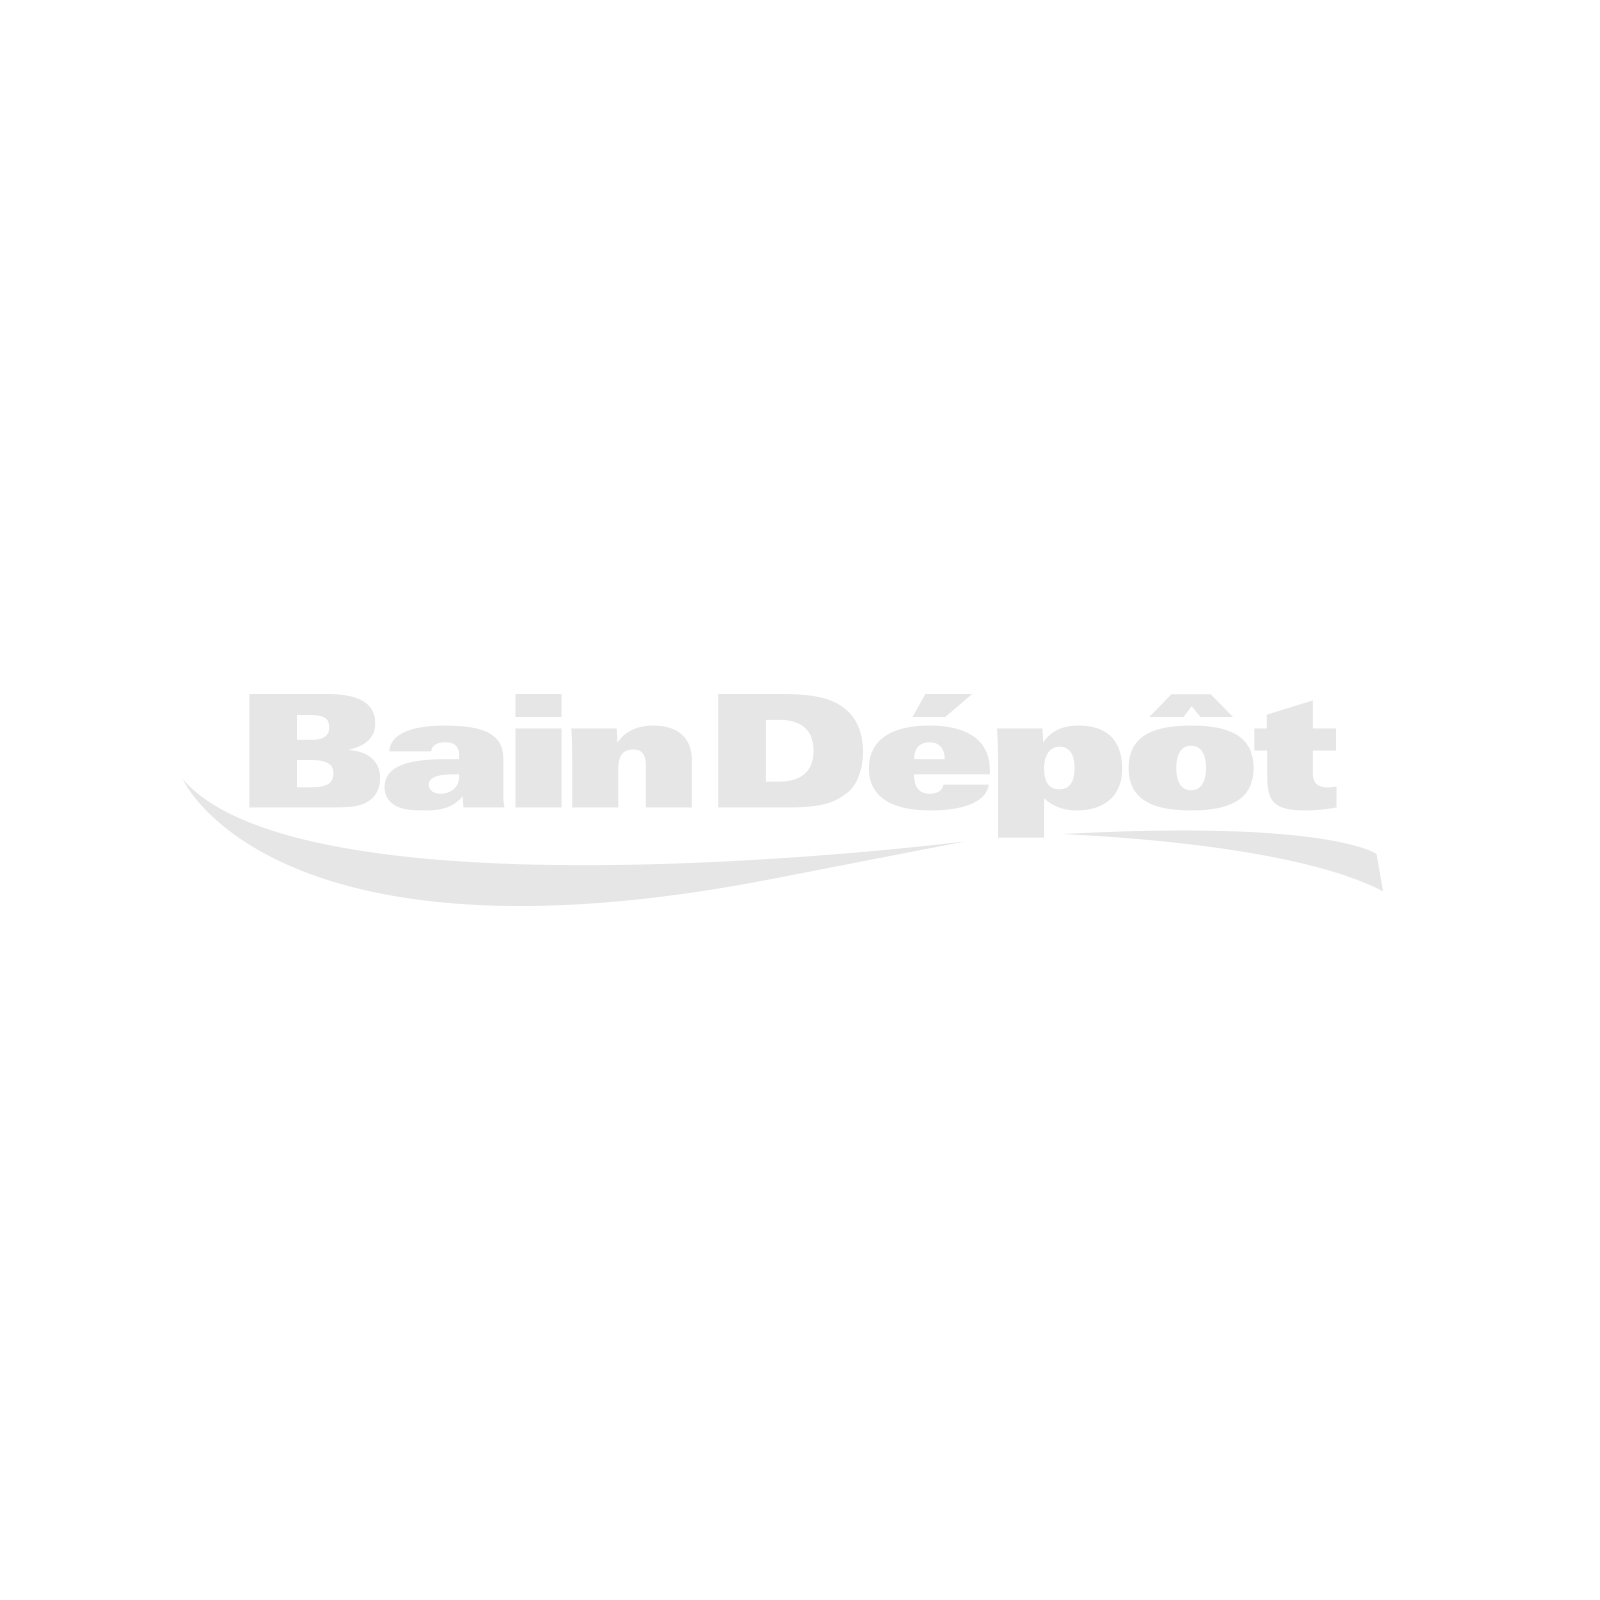 Satin gold shower faucet with round hand shower and rain showerhead